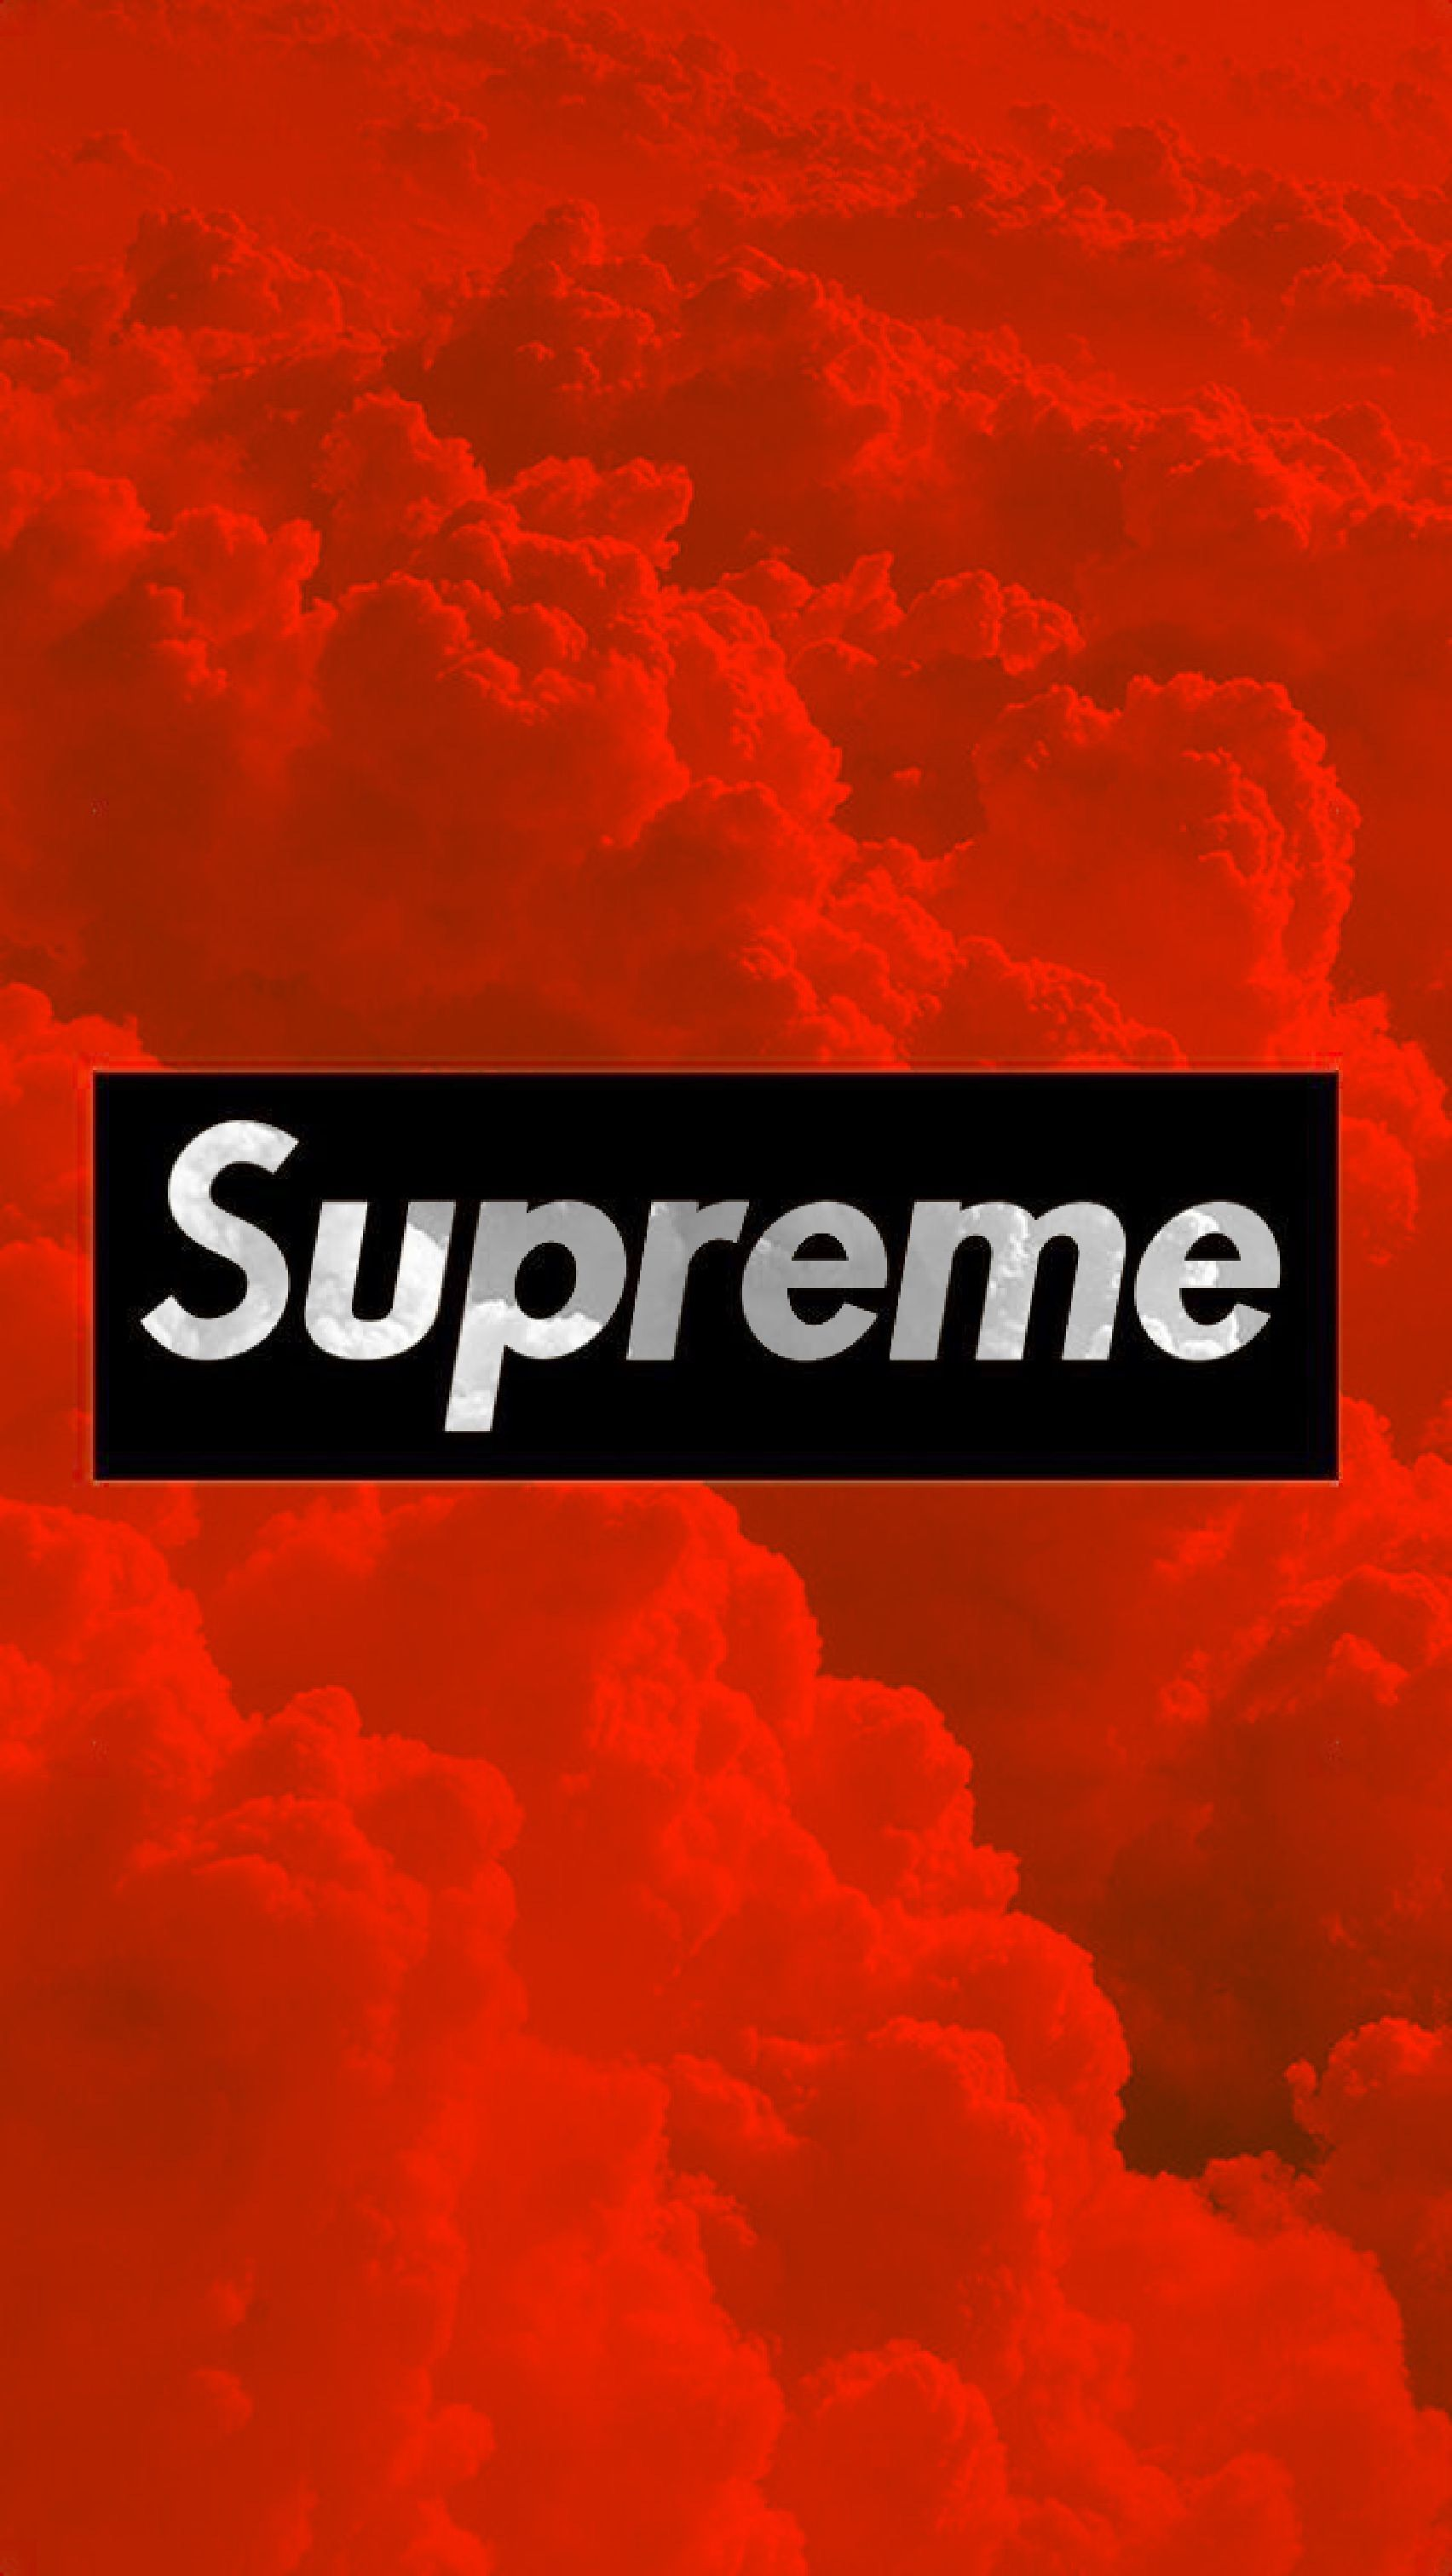 Liftedmiles Supreme Supremewallpaper Supremestreetwear Supreme Wallpaper Supreme Iphone Wallpaper Supreme Wallpaper Hd